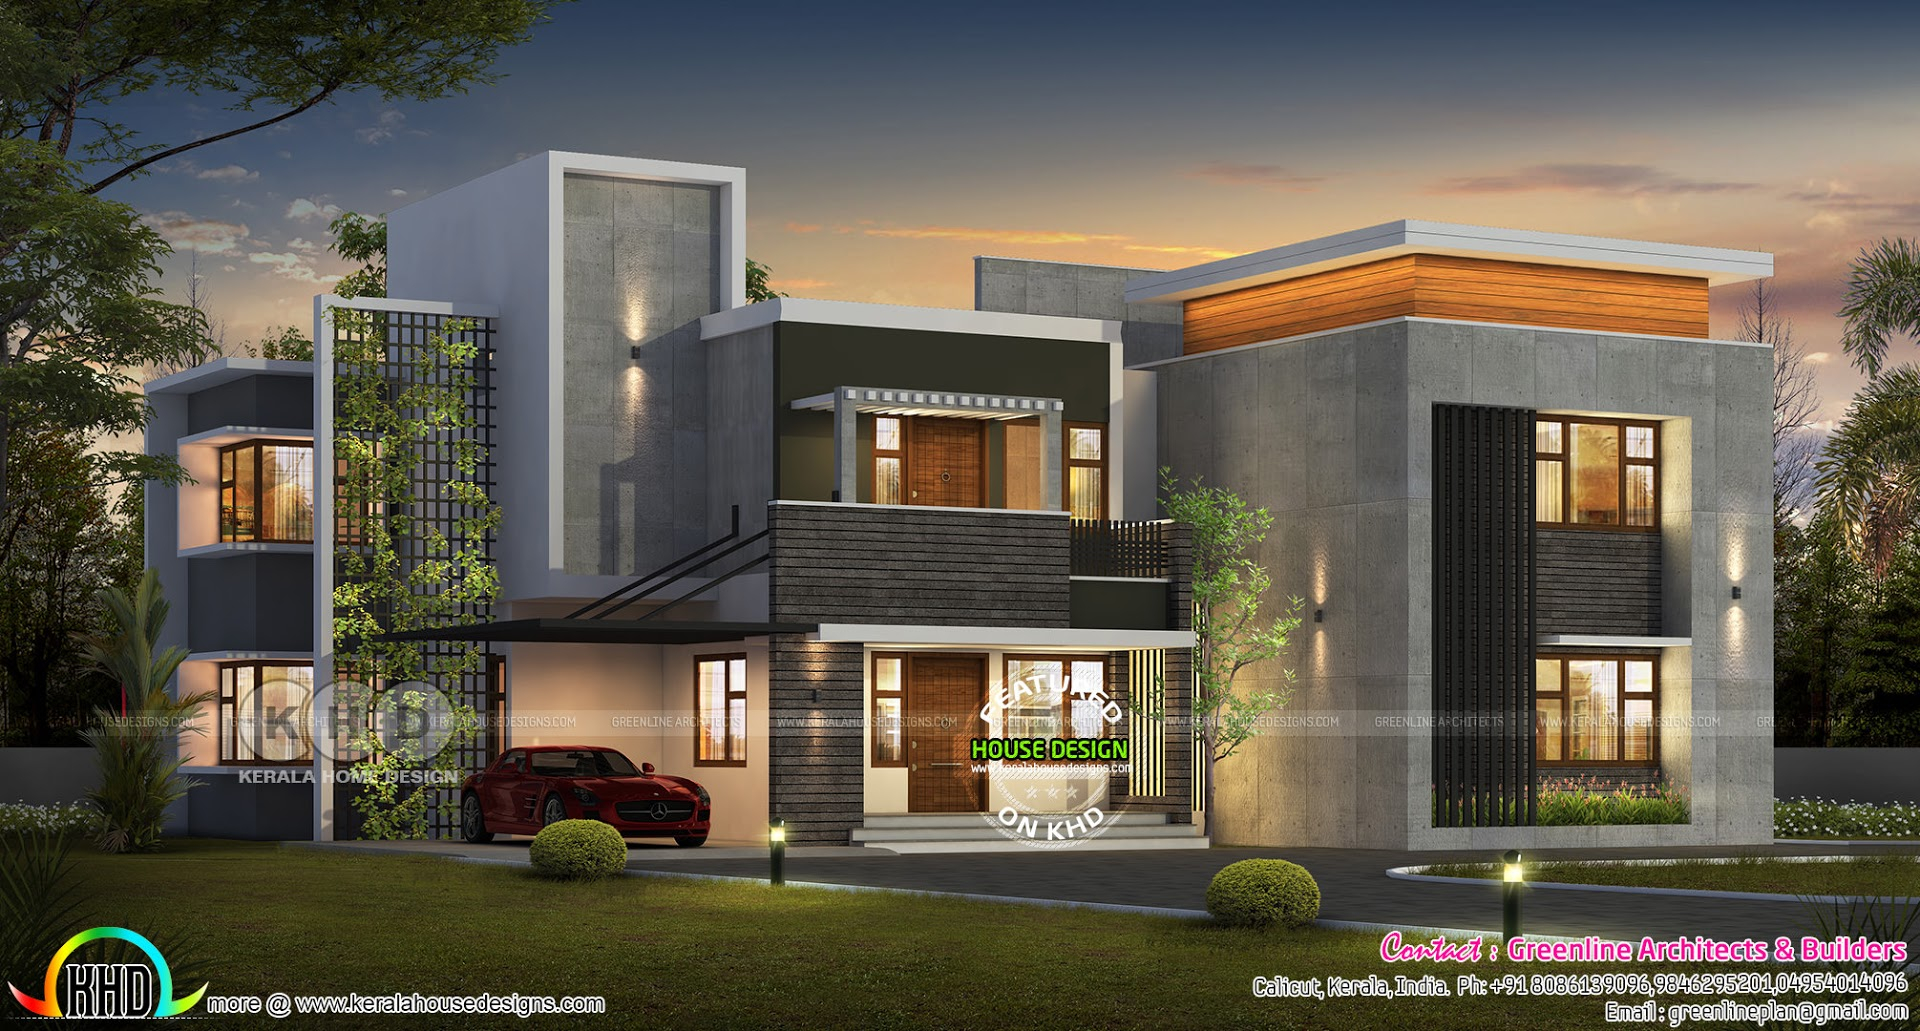 Ultra Modern 5 Bedroom Contemporary House Plan Kerala Home Design intended for Modern 5 Bedroom House Plans